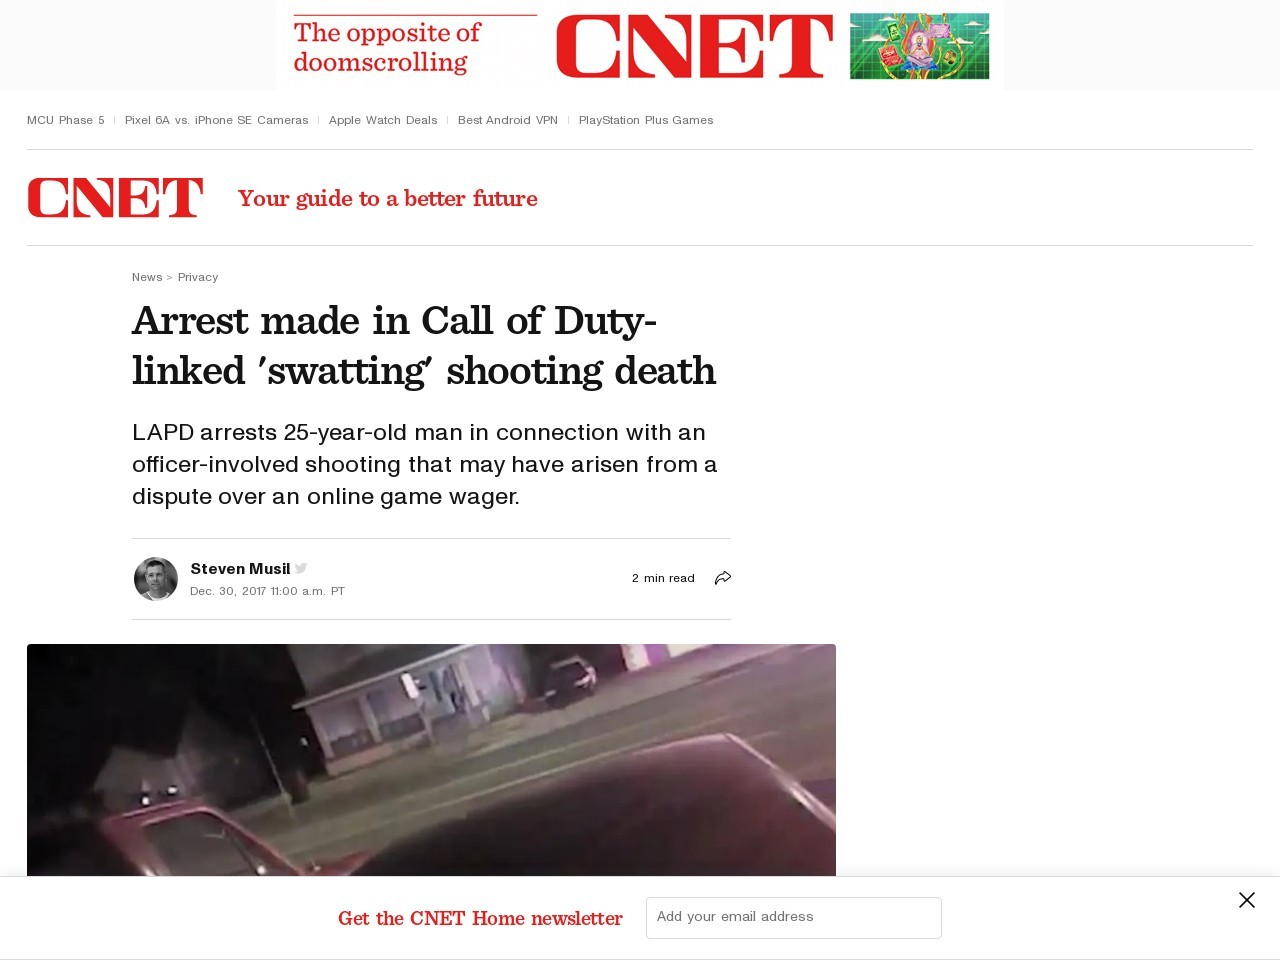 Arrest made in Call of Duty-linked 'swatting' shooting death     – CNET